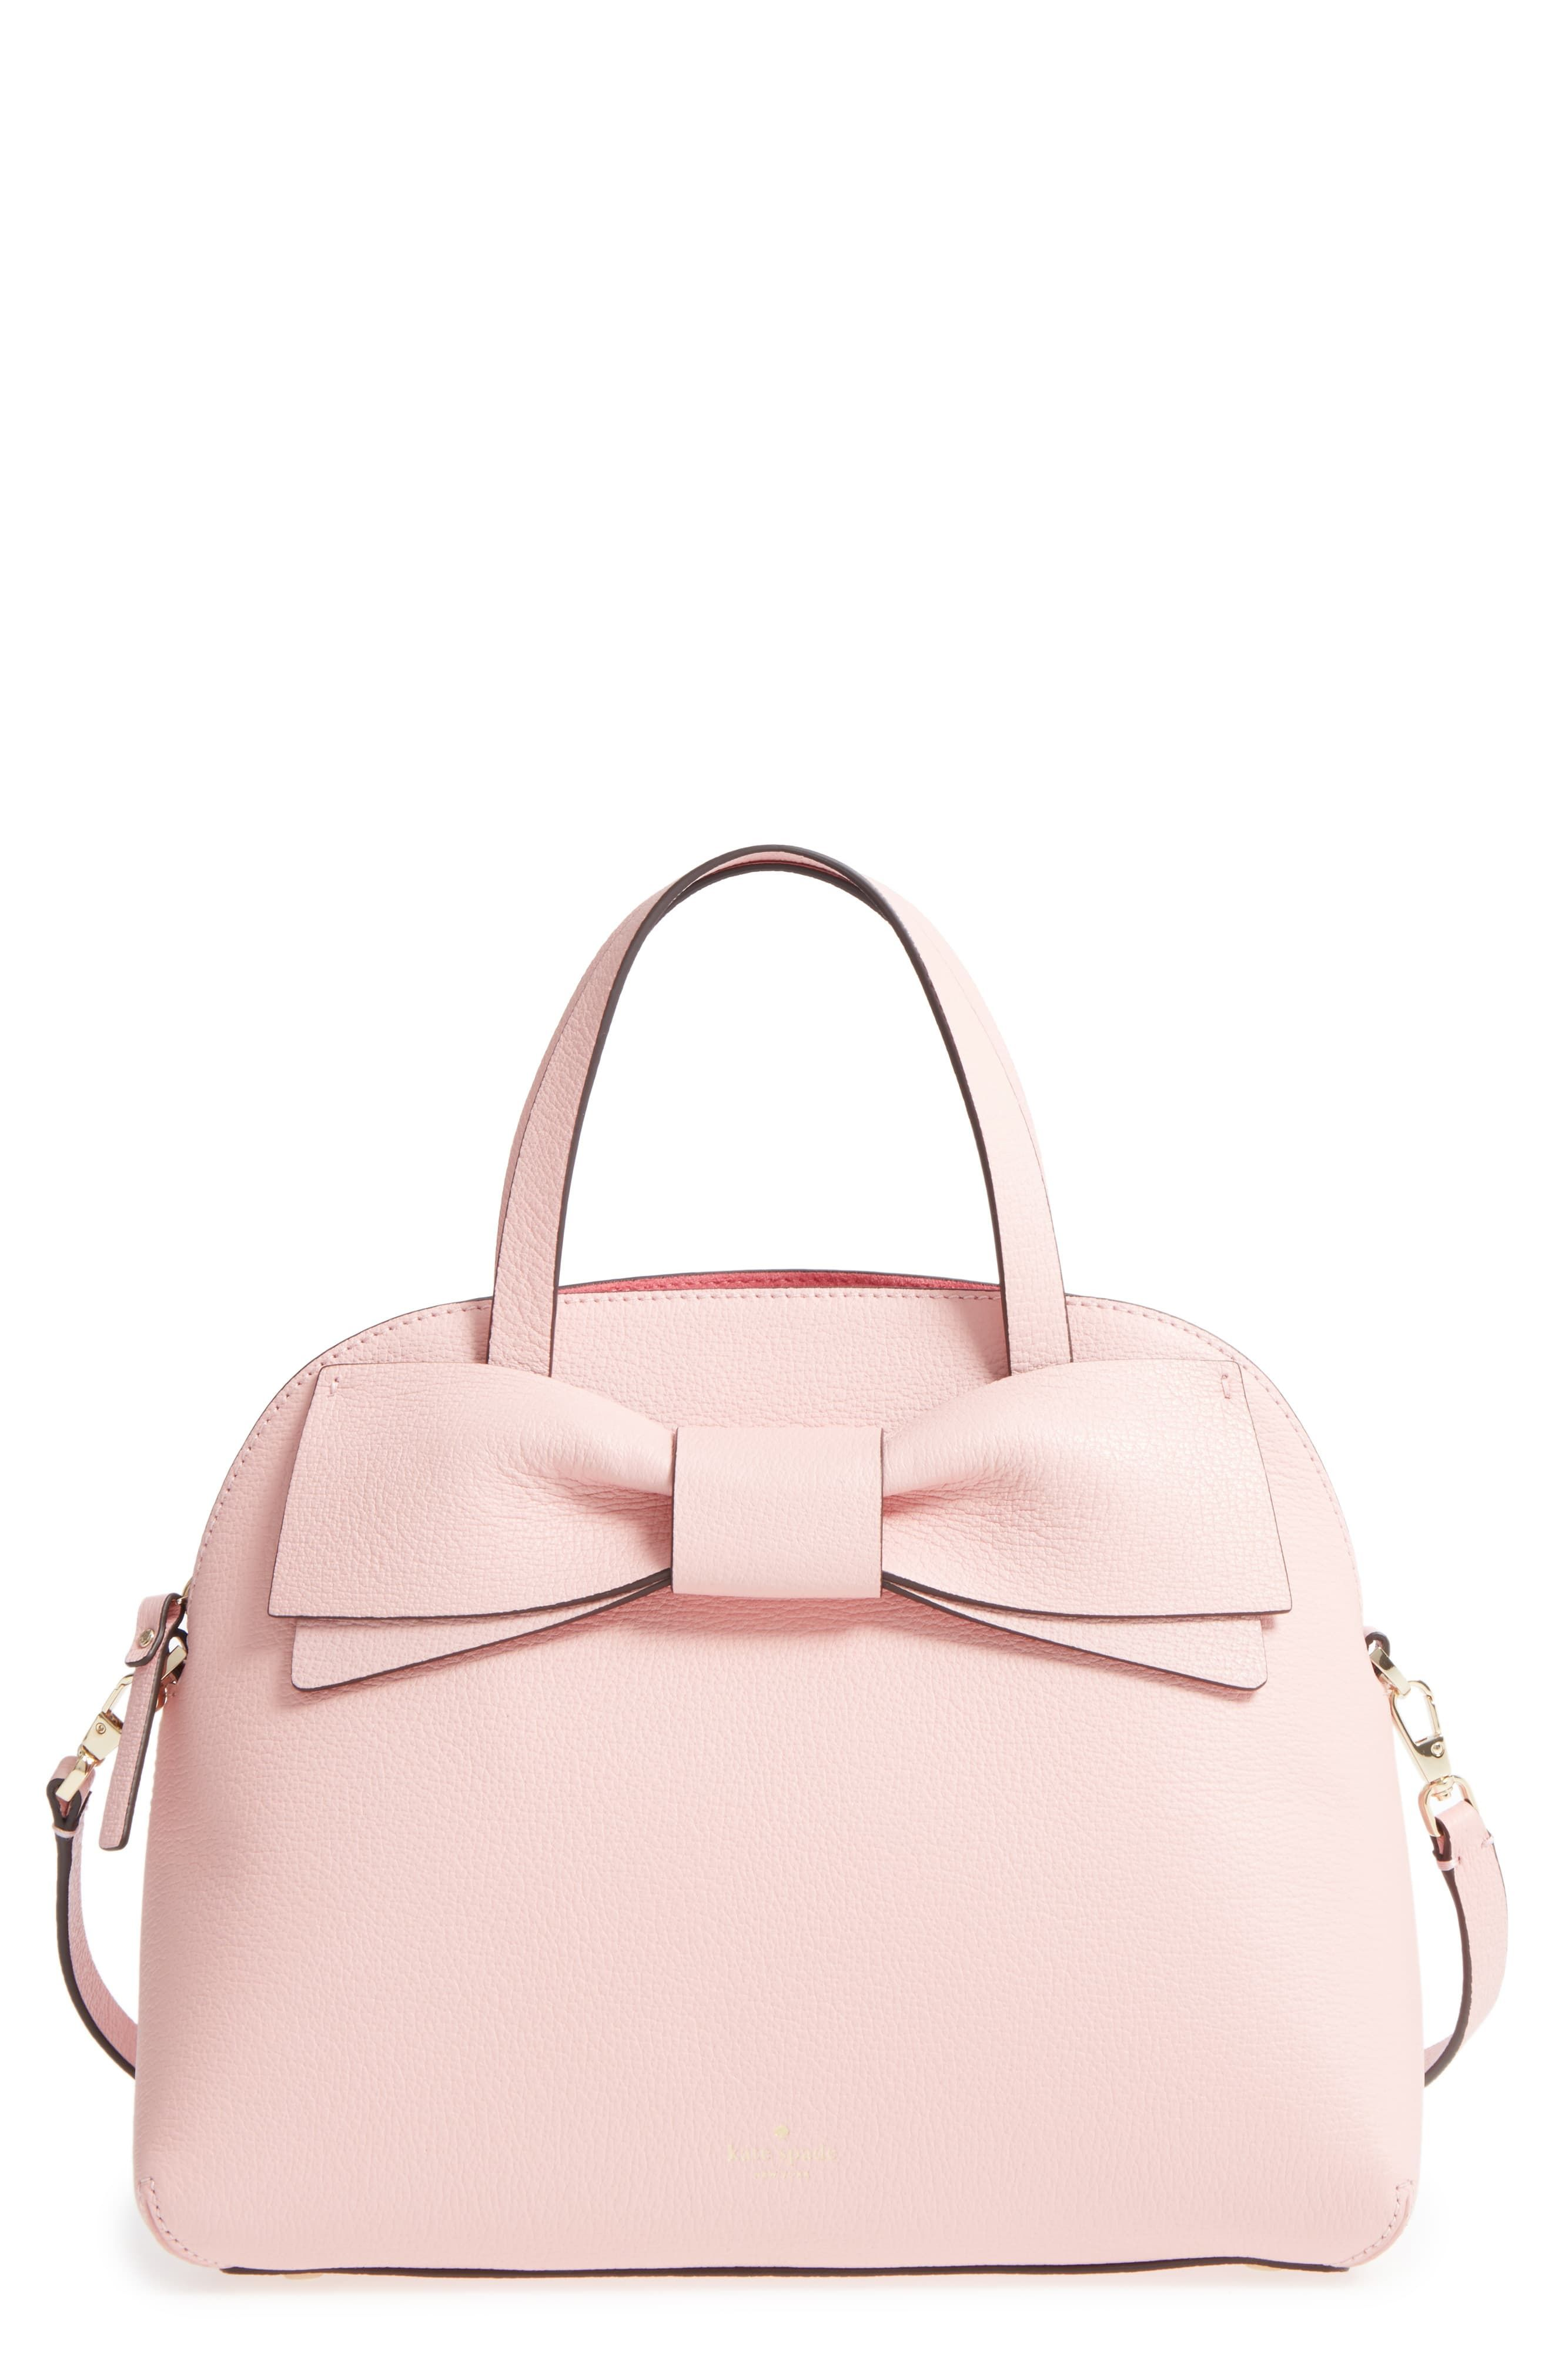 aa70bc4126fd Kate Spade New York Olive Drive Lottie Leather Satchel - Pink ...